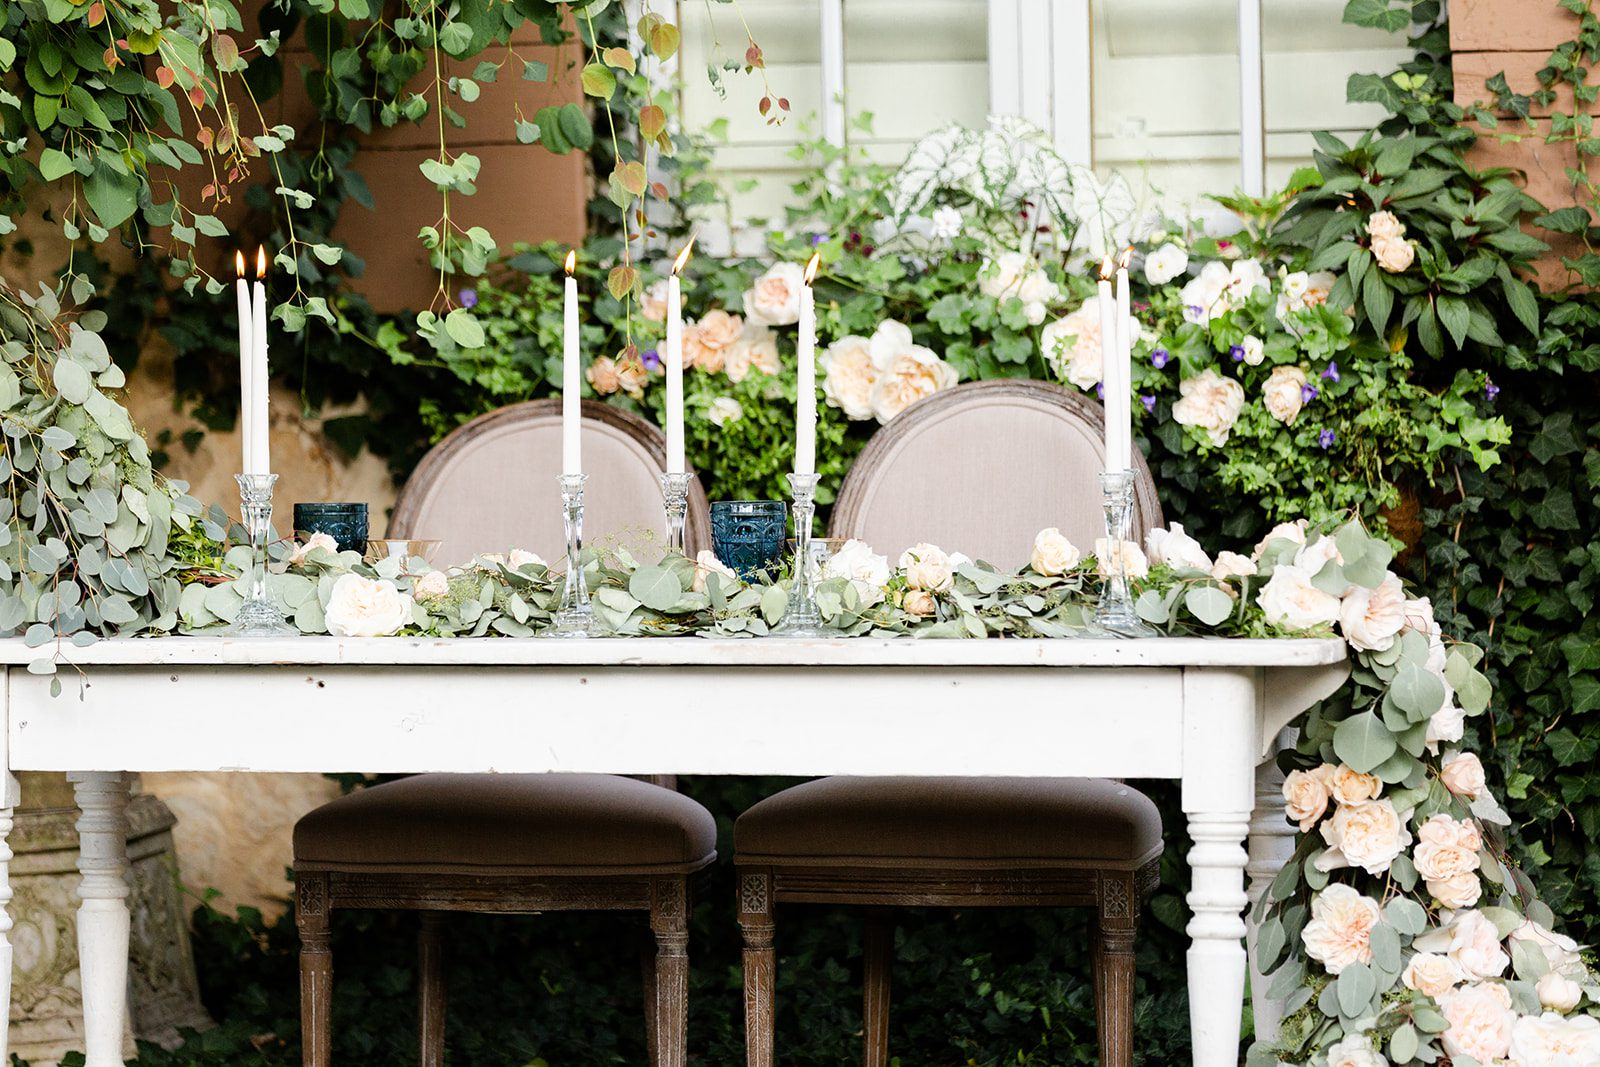 Styled Shoot: European Romance